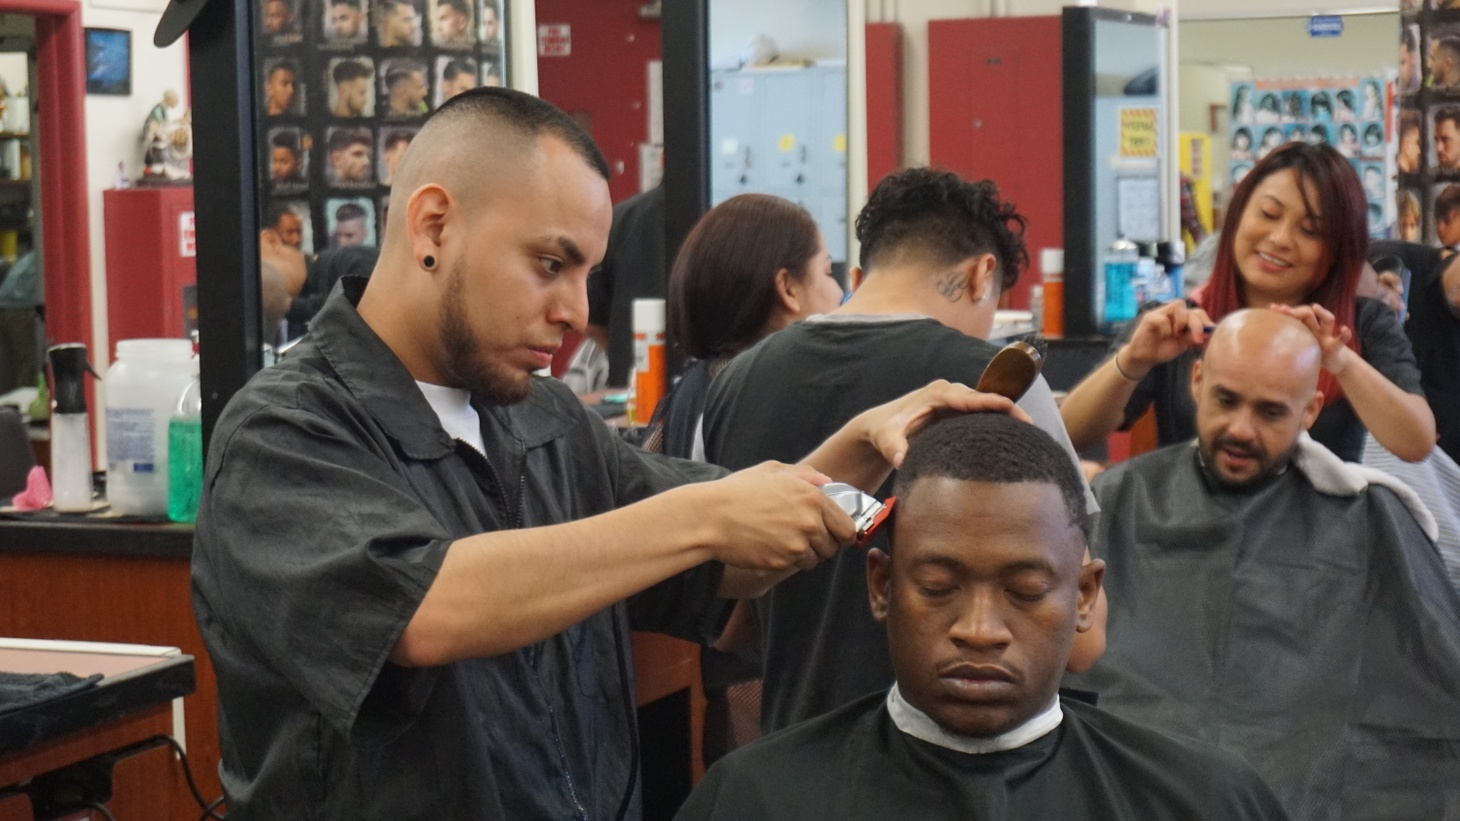 LAUSD students in a barber training program.